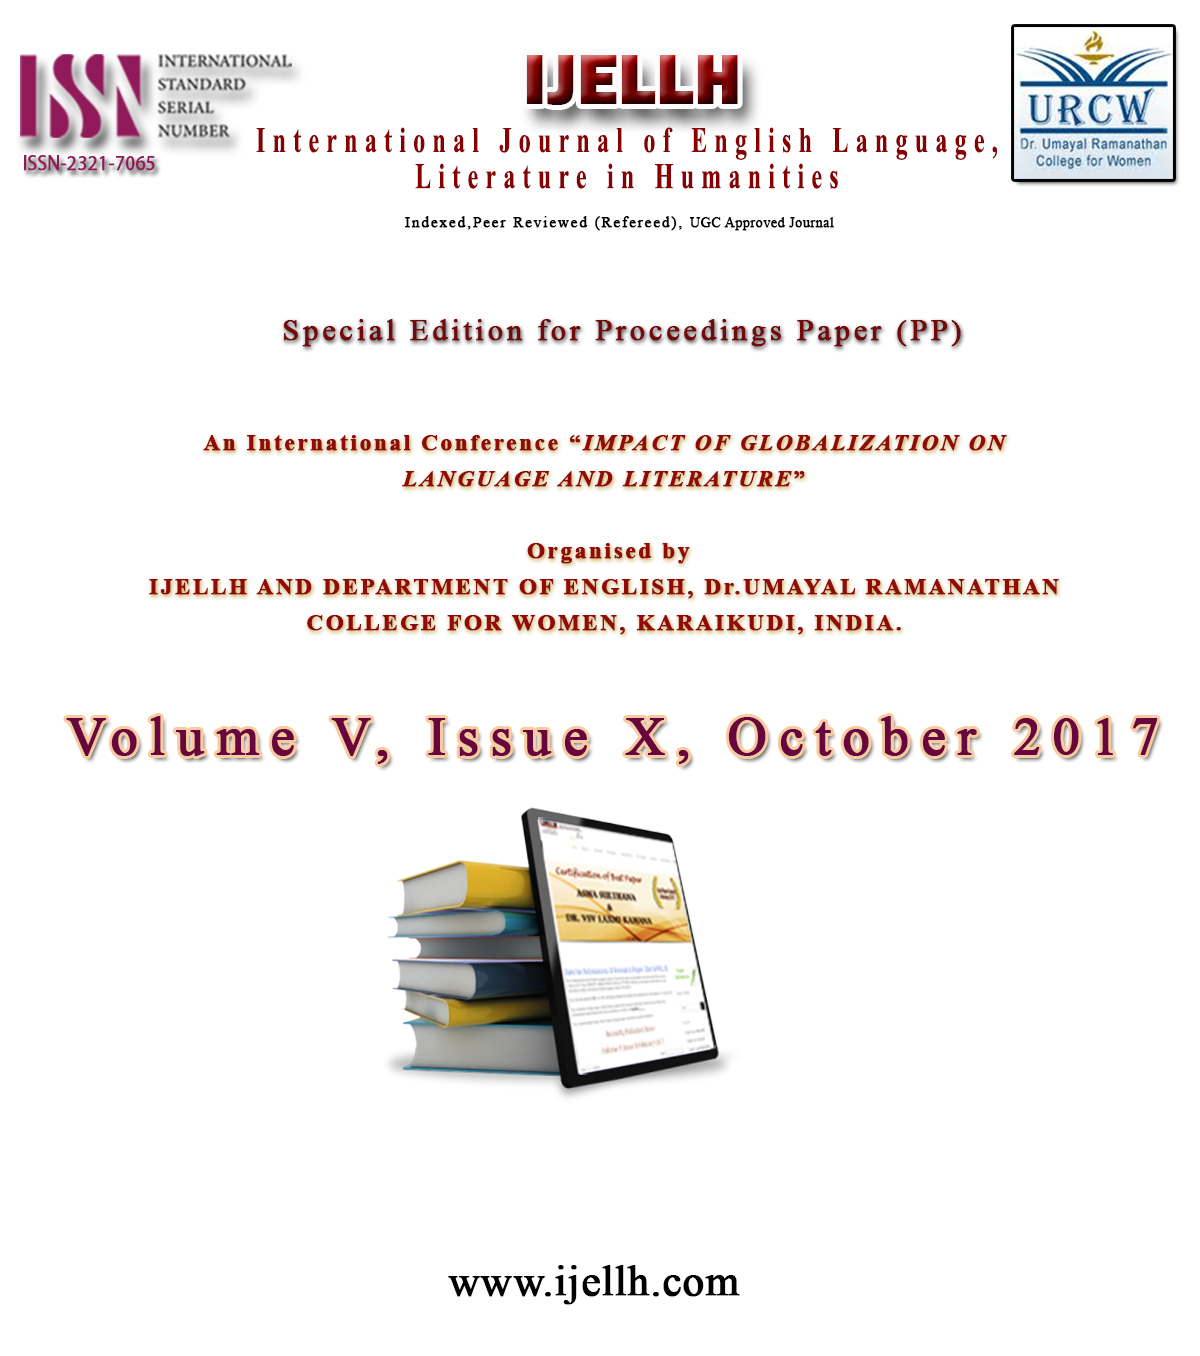 Special Edition for Proceedings Paper (PP)